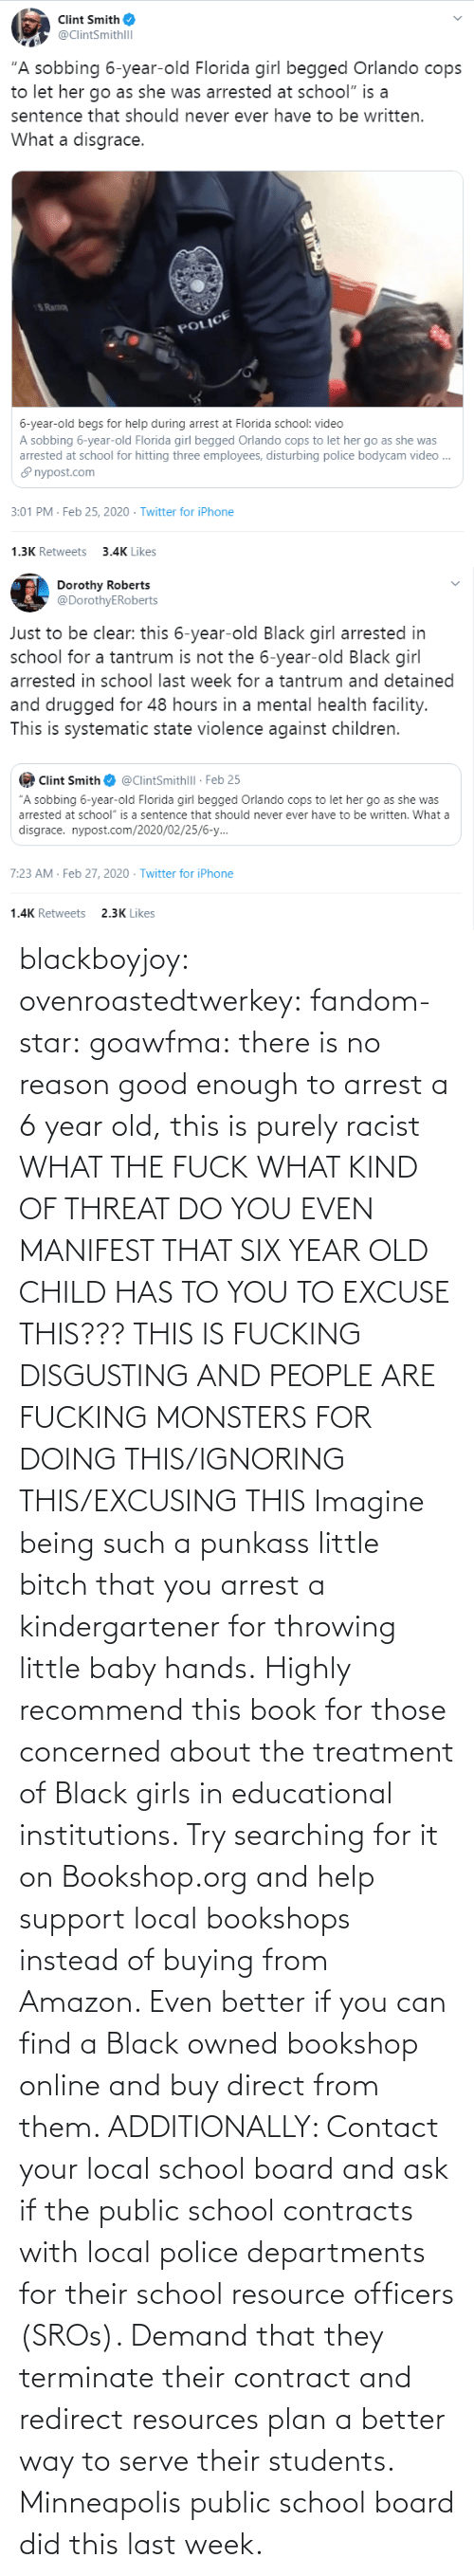 there: blackboyjoy:  ovenroastedtwerkey:  fandom-star:  goawfma: there is no reason good enough to arrest a 6 year old, this is purely racist WHAT THE FUCK WHAT KIND OF THREAT DO YOU EVEN MANIFEST THAT SIX YEAR OLD CHILD HAS TO YOU TO EXCUSE THIS??? THIS IS FUCKING DISGUSTING AND PEOPLE ARE FUCKING MONSTERS FOR DOING THIS/IGNORING THIS/EXCUSING THIS    Imagine being such a punkass little bitch that you arrest a kindergartener for throwing little baby hands.  Highly recommend this book for those concerned about the treatment of Black girls in educational institutions.  Try searching for it on Bookshop.org and help support local bookshops instead of buying from Amazon. Even better if you can find a Black owned bookshop online and buy direct from them.  ADDITIONALLY: Contact your local school board and ask if the public school contracts with local police departments for their school resource officers (SROs). Demand that they terminate their contract and redirect resources plan a better way to serve their students. Minneapolis public school board did this last week.